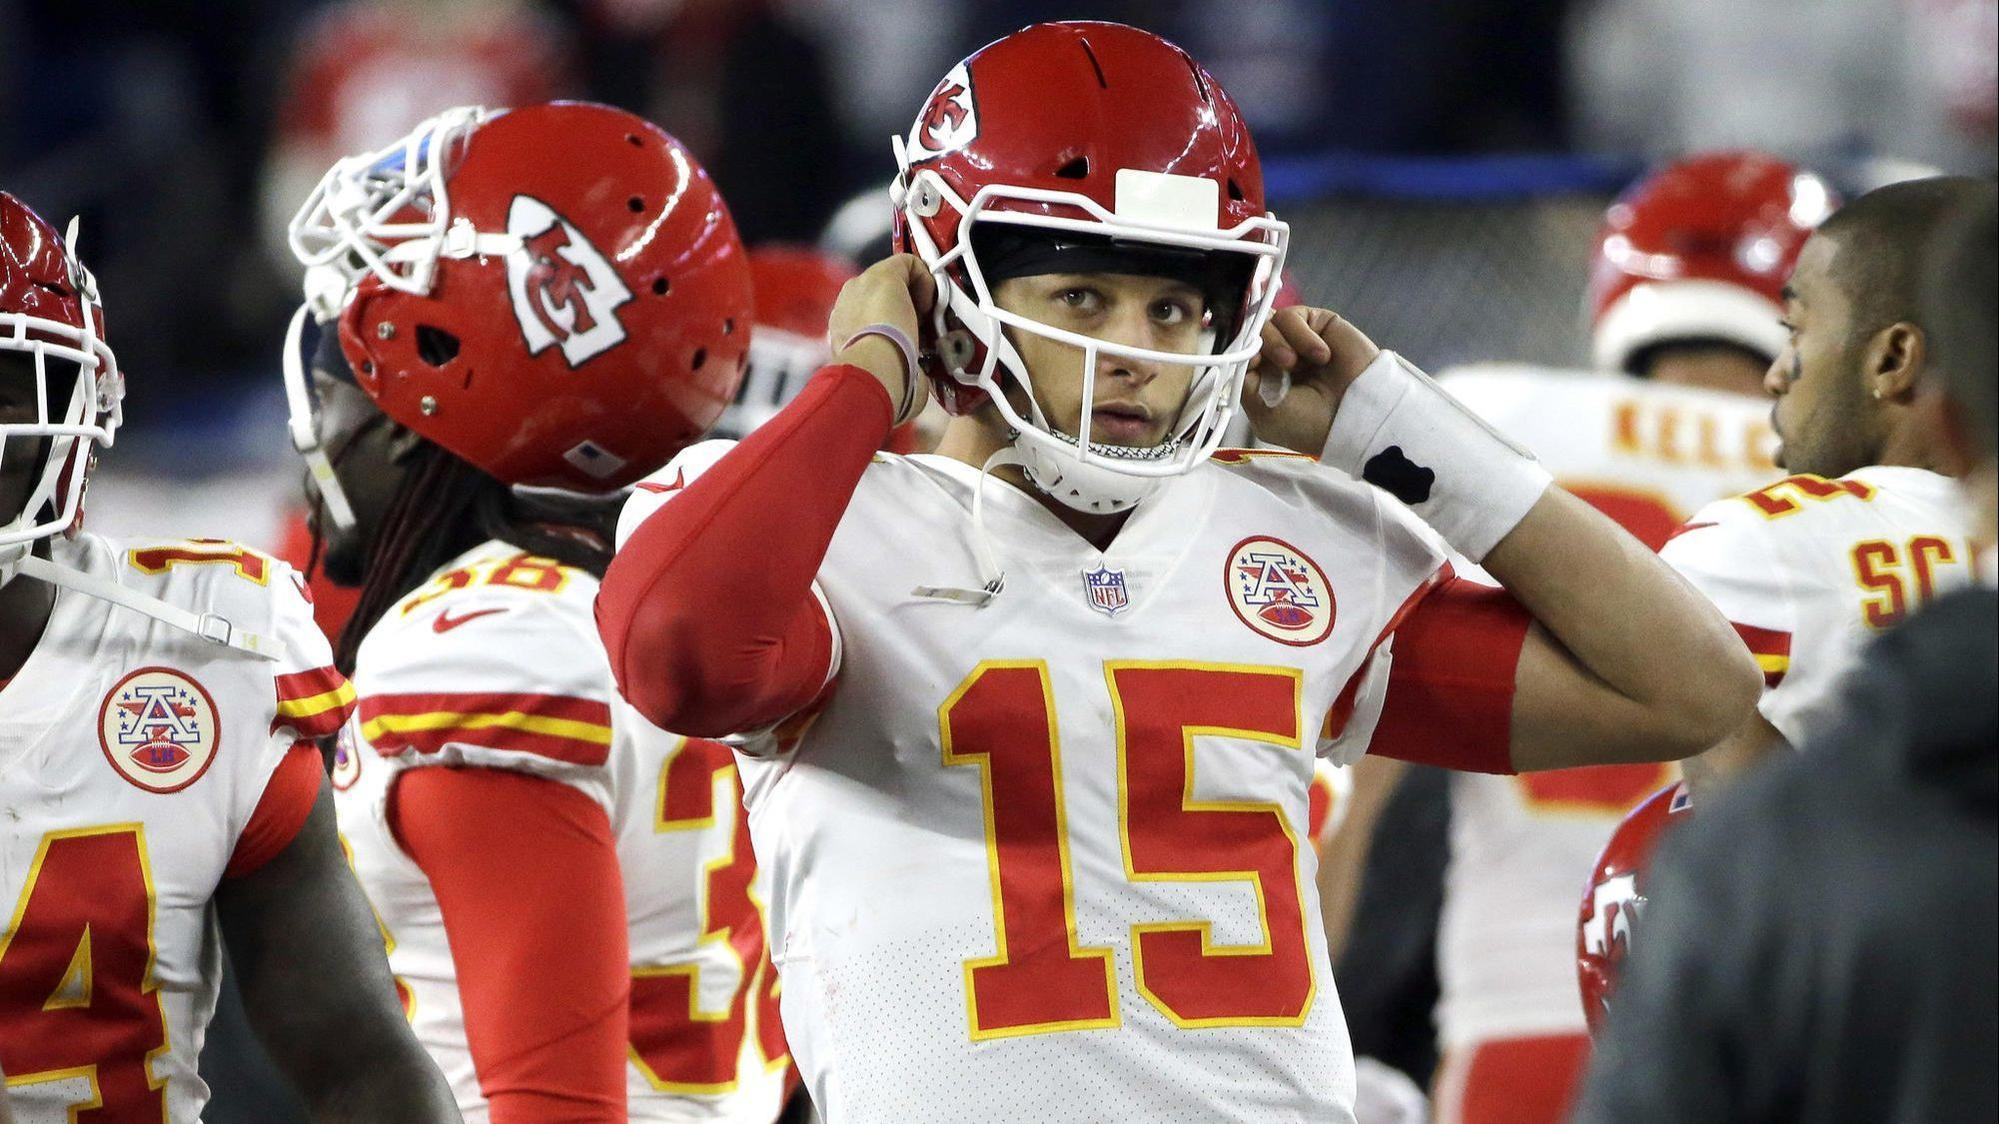 Chiefs quarterback Patrick Mahomes gets killed in 'Fortnite' by someone wearing his jersey